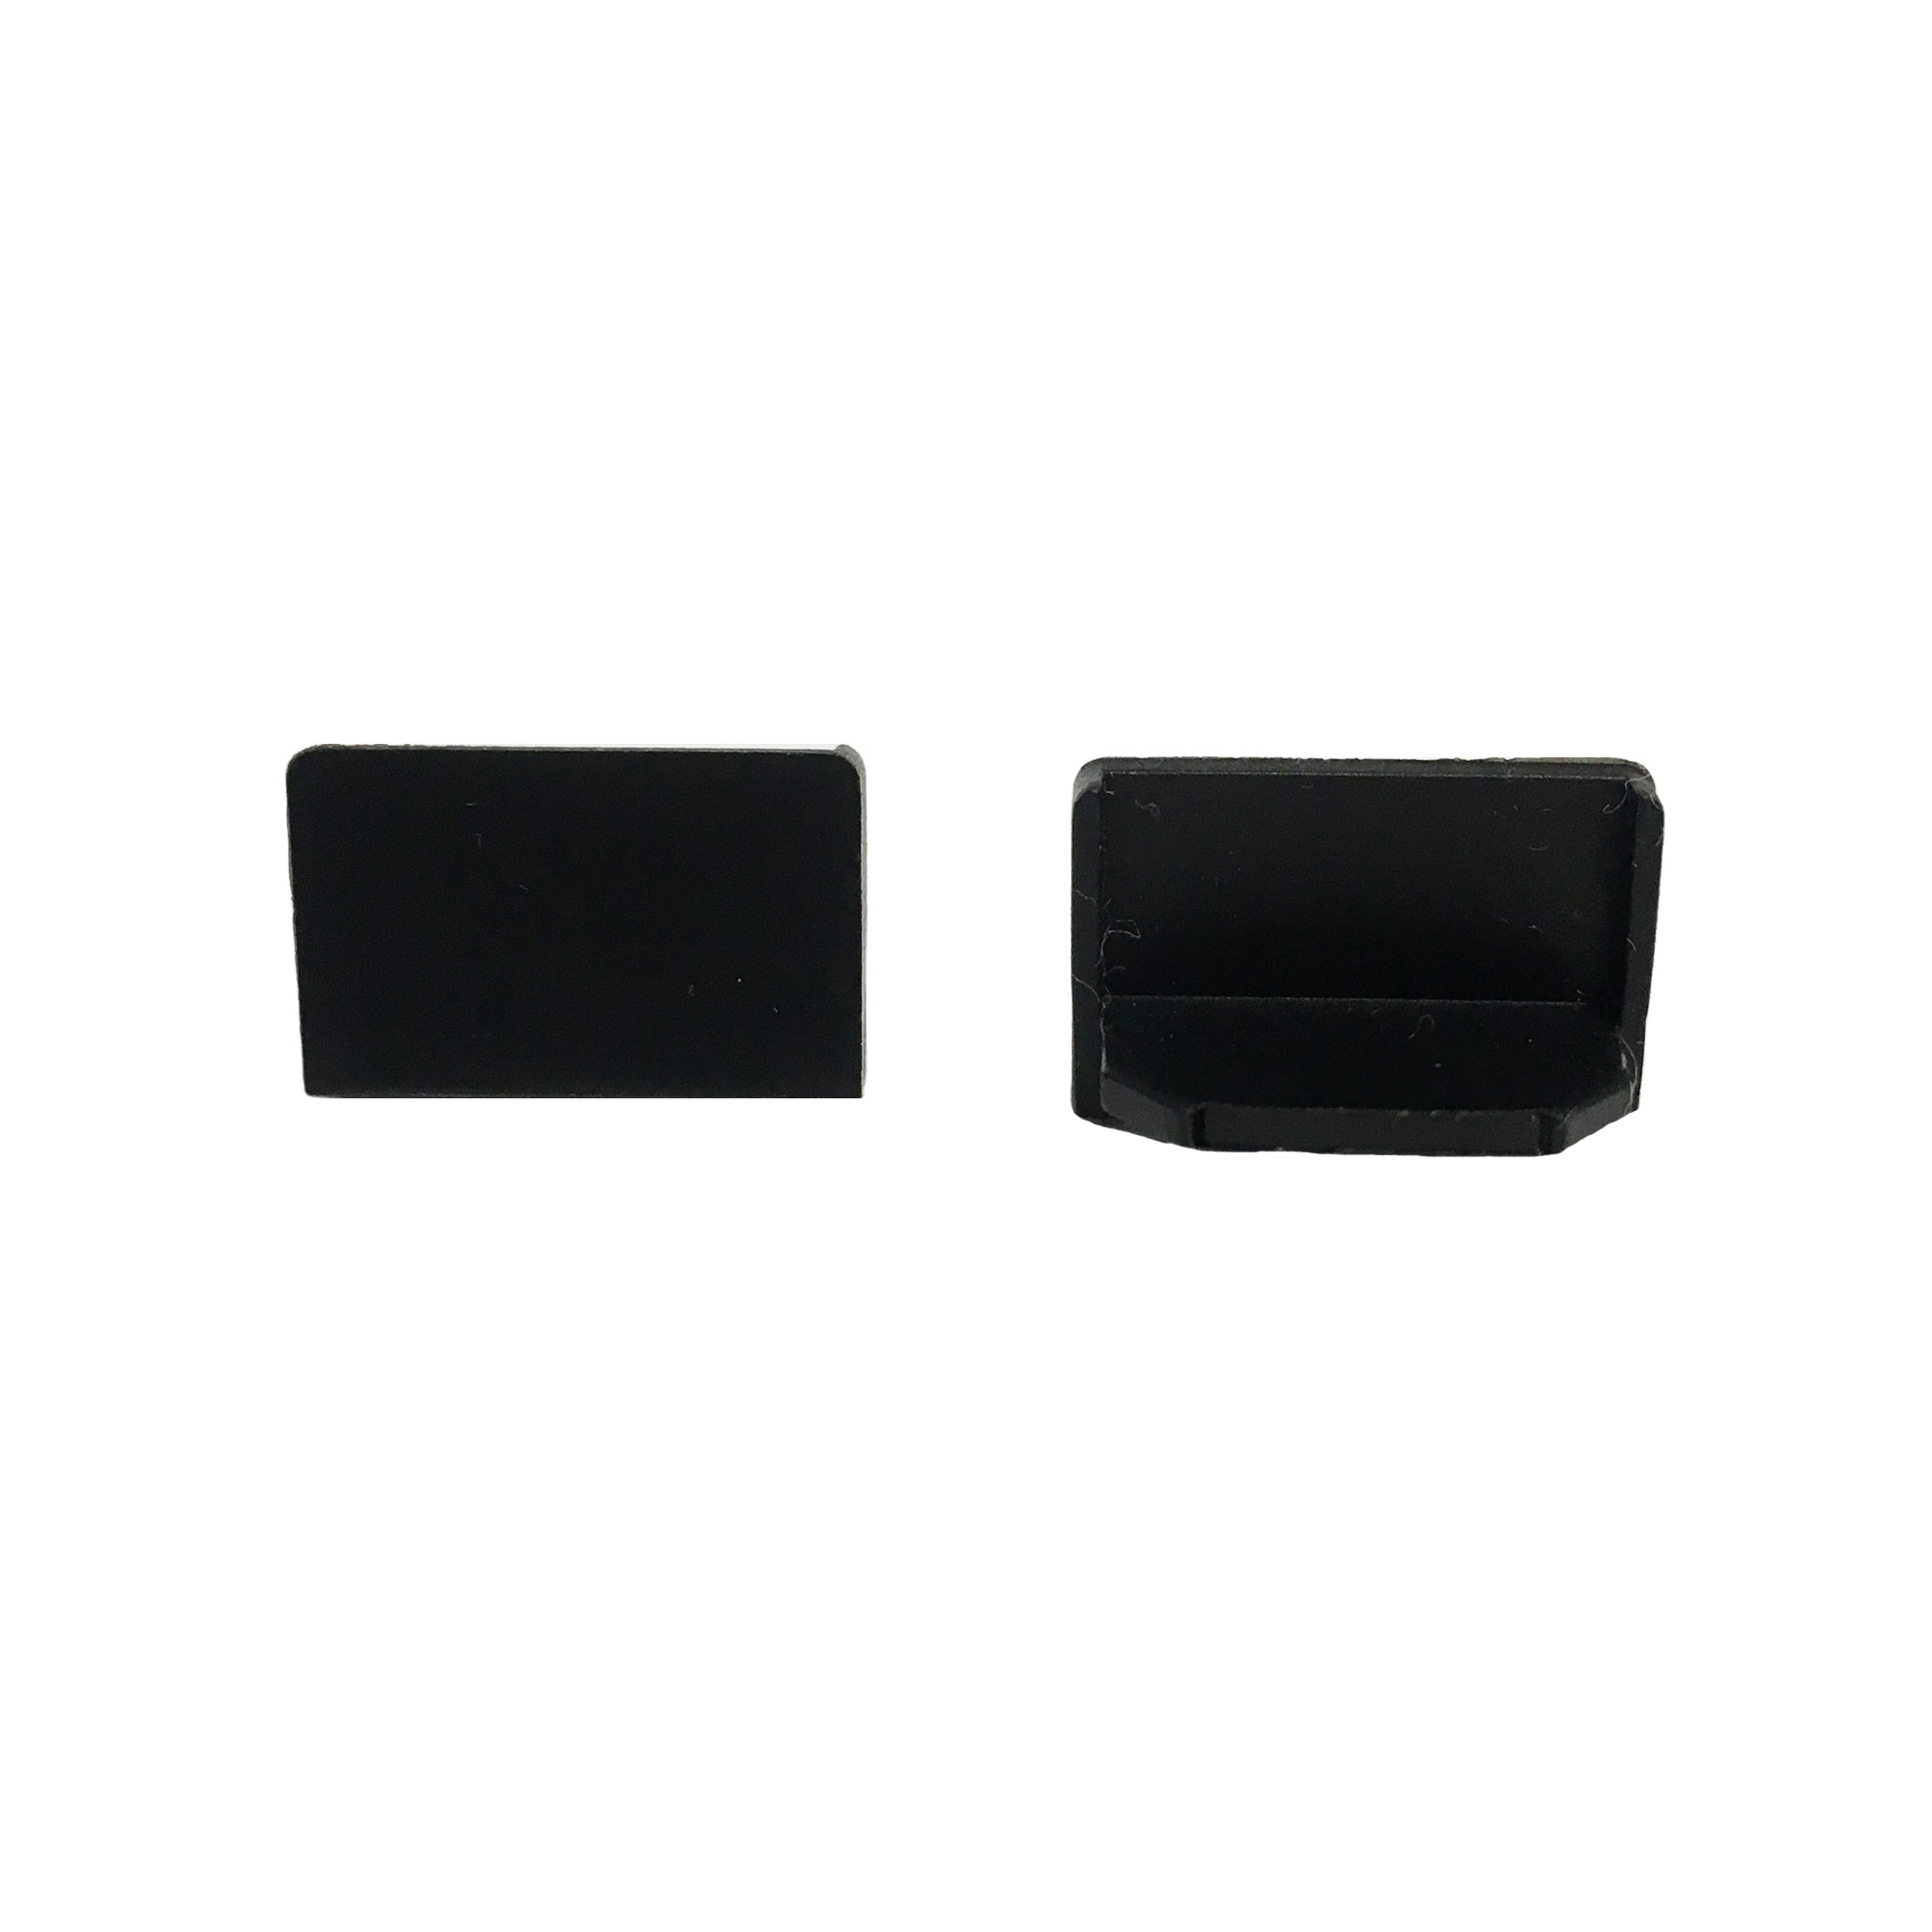 End Cap Snap Channel ES 0.5 Black   SKU: 63634